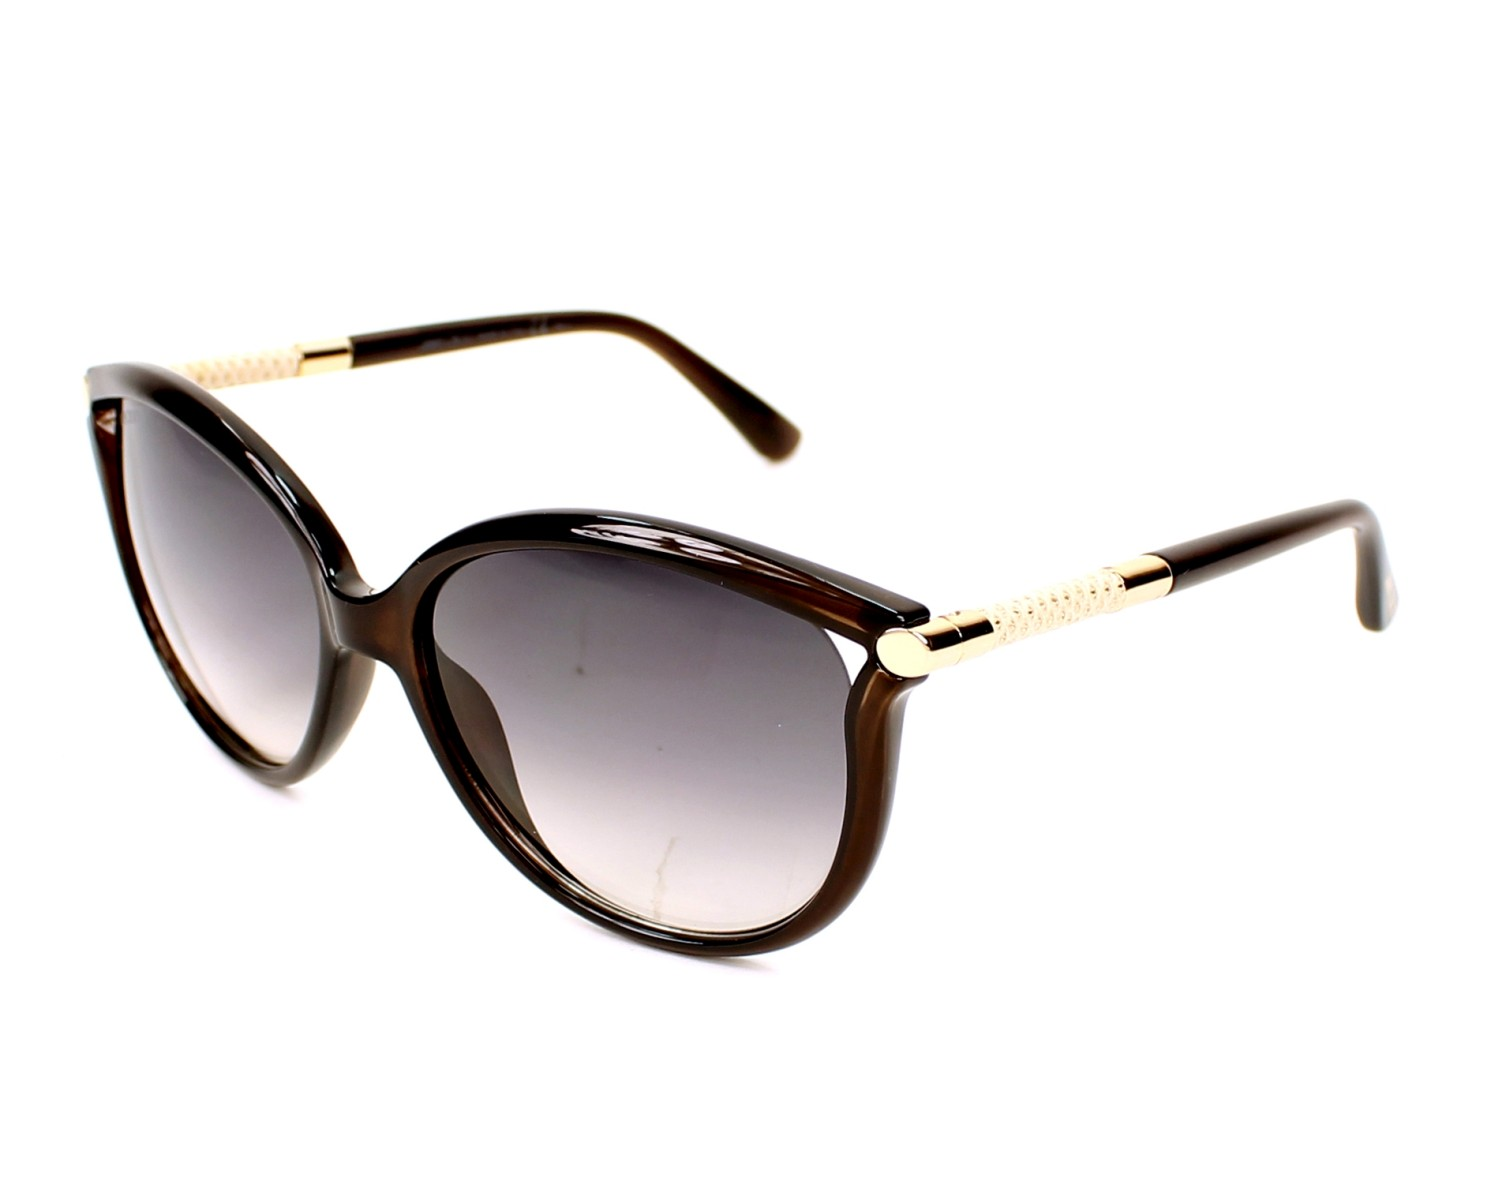 Jimmy Choo Sunglasses Giorgy S Qd3 9c Brown With Black